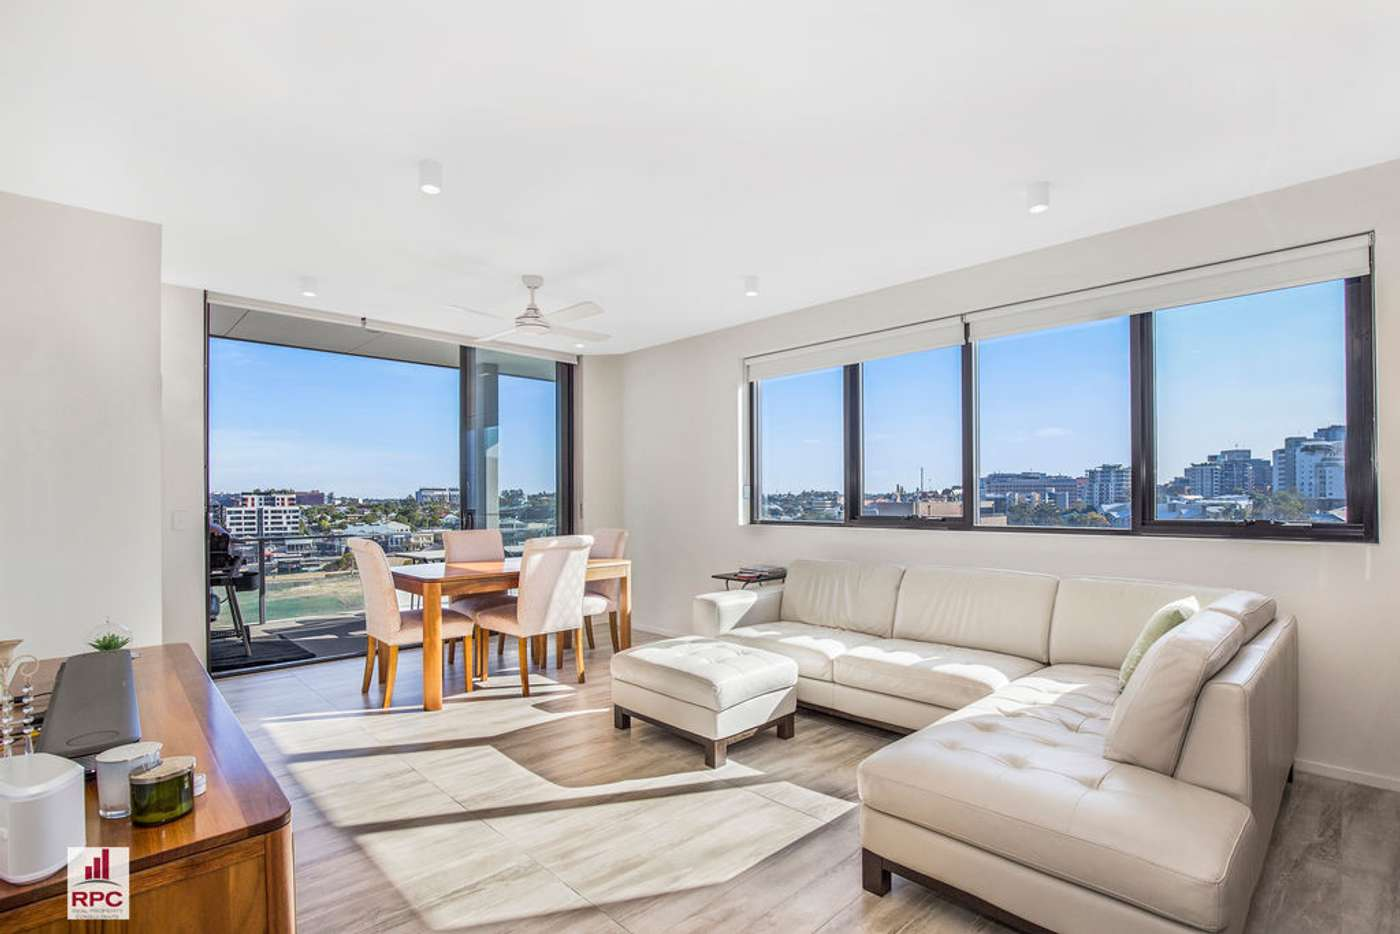 Main view of Homely apartment listing, 802/36 Anglesey Street, Kangaroo Point QLD 4169